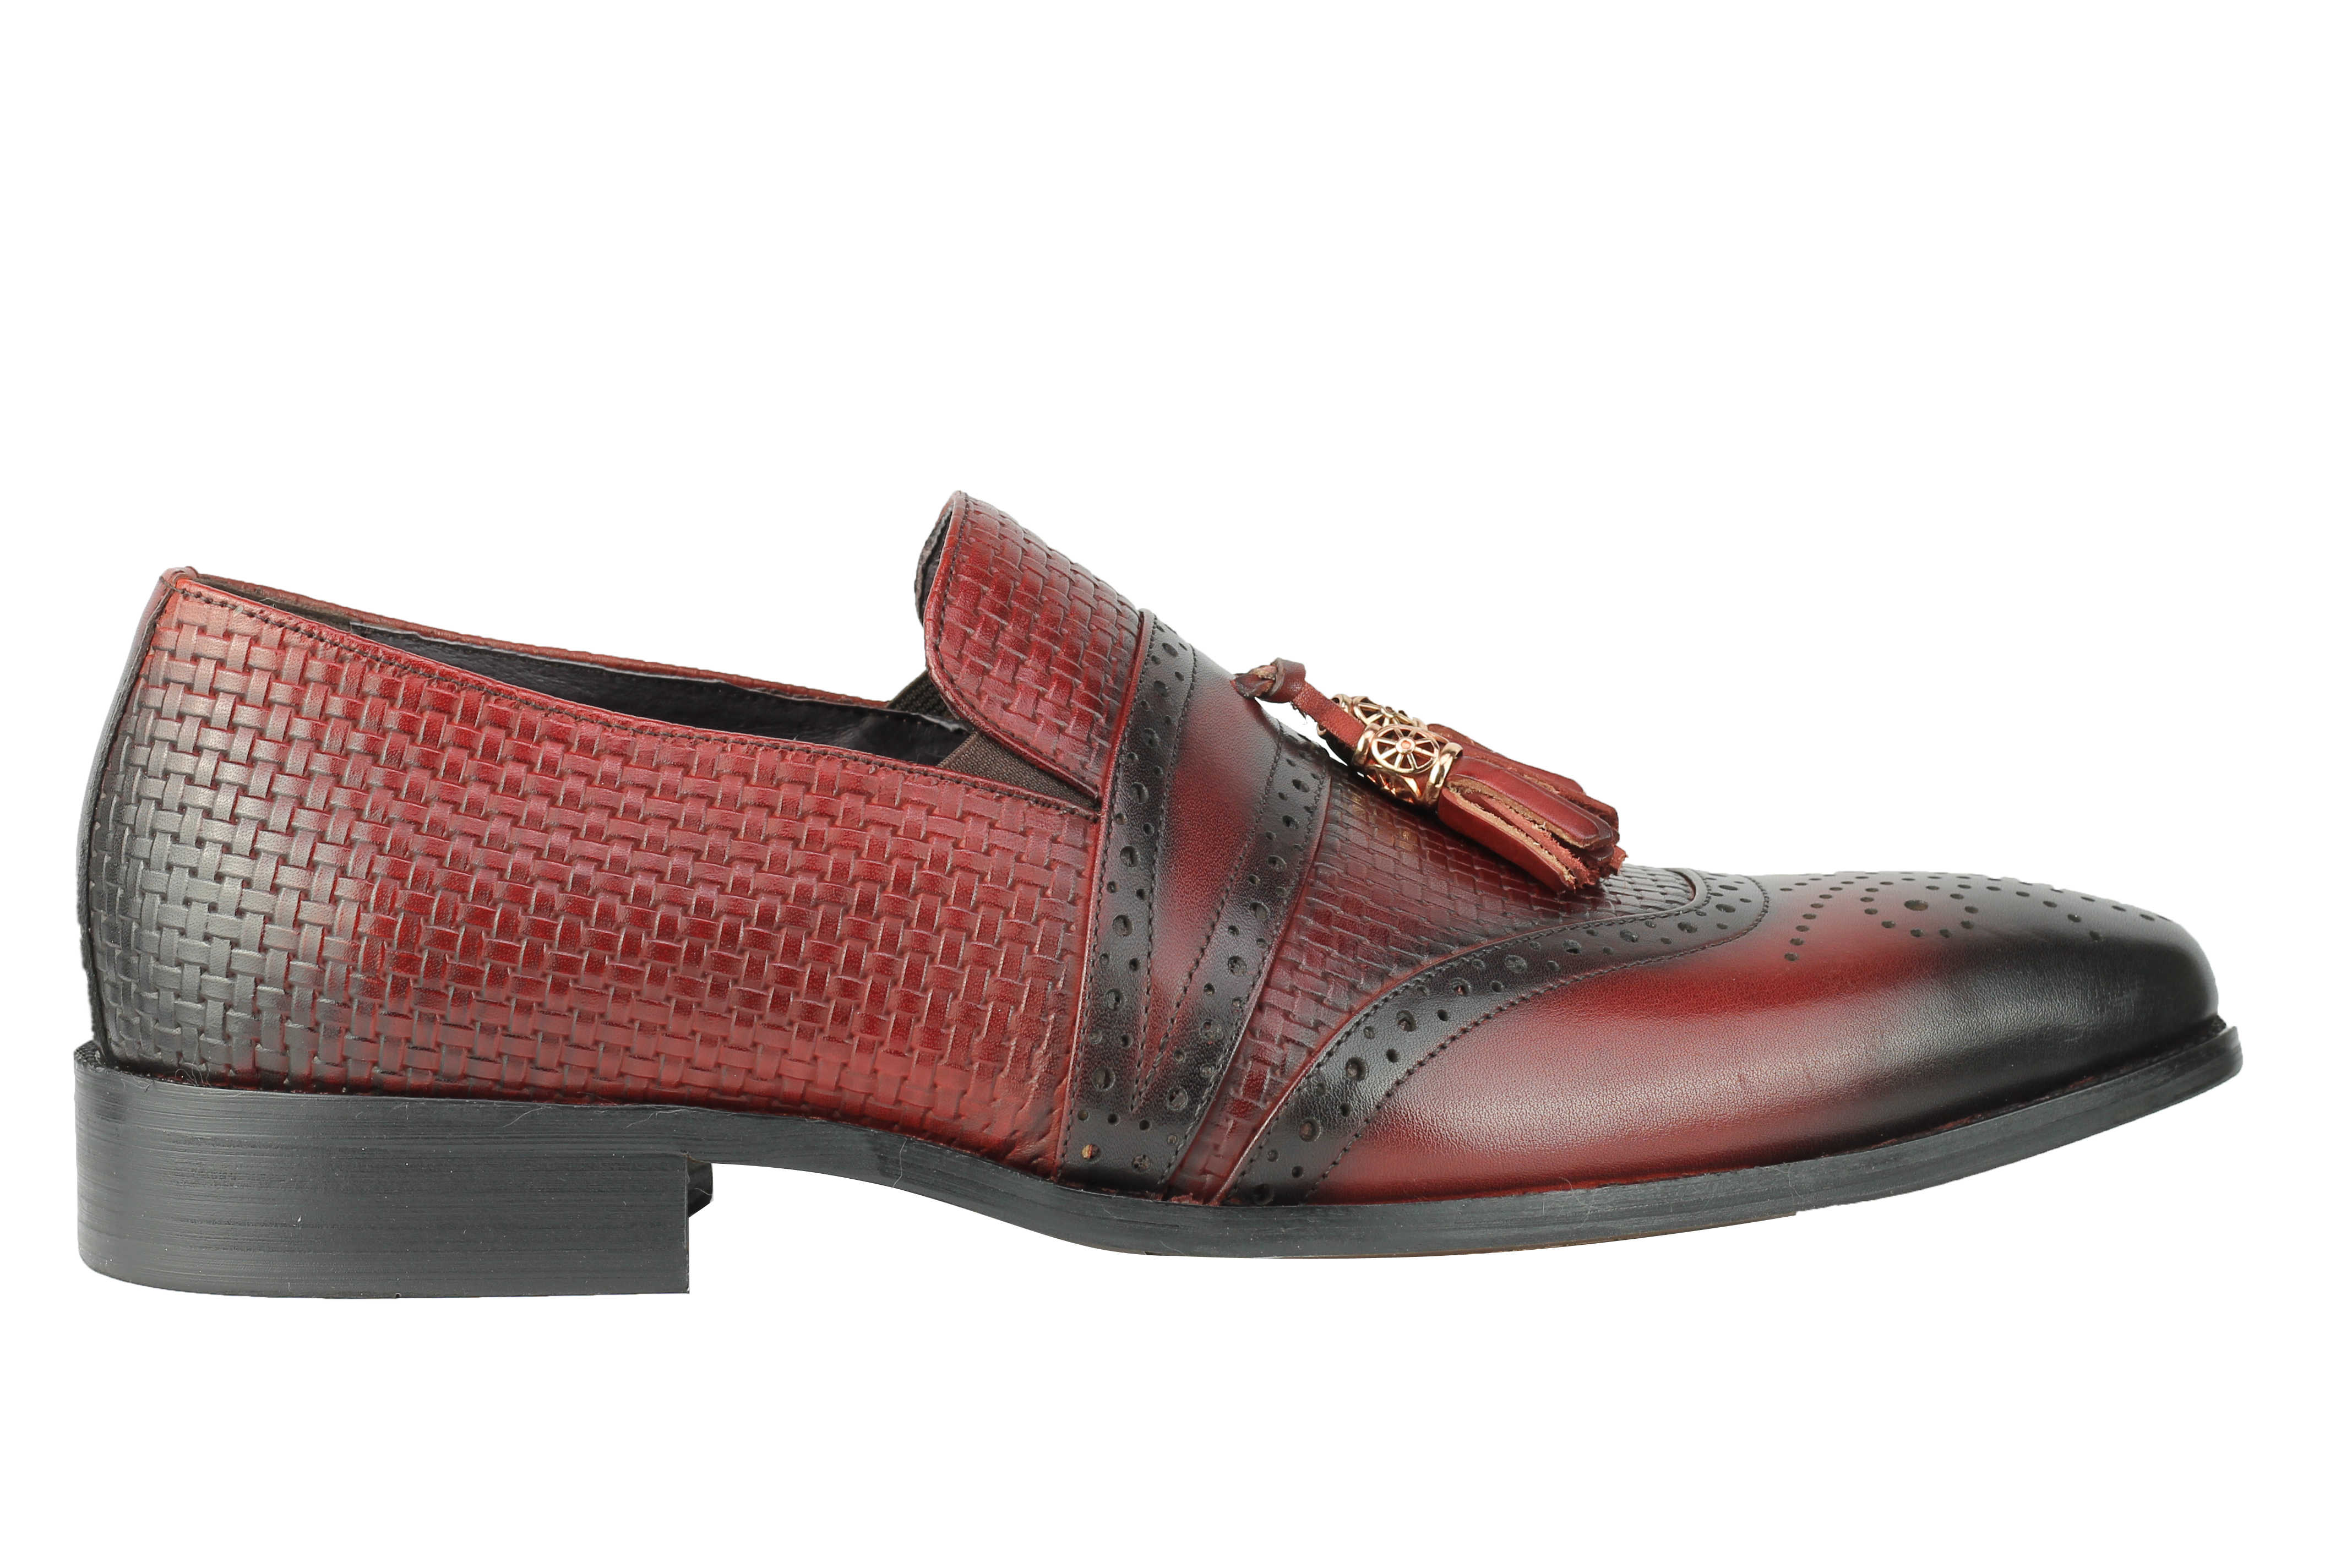 Mens-Real-Leather-Slip-on-Tassel-Loafers-High-Detailed-Smart-Dress-Party-Shoes thumbnail 11